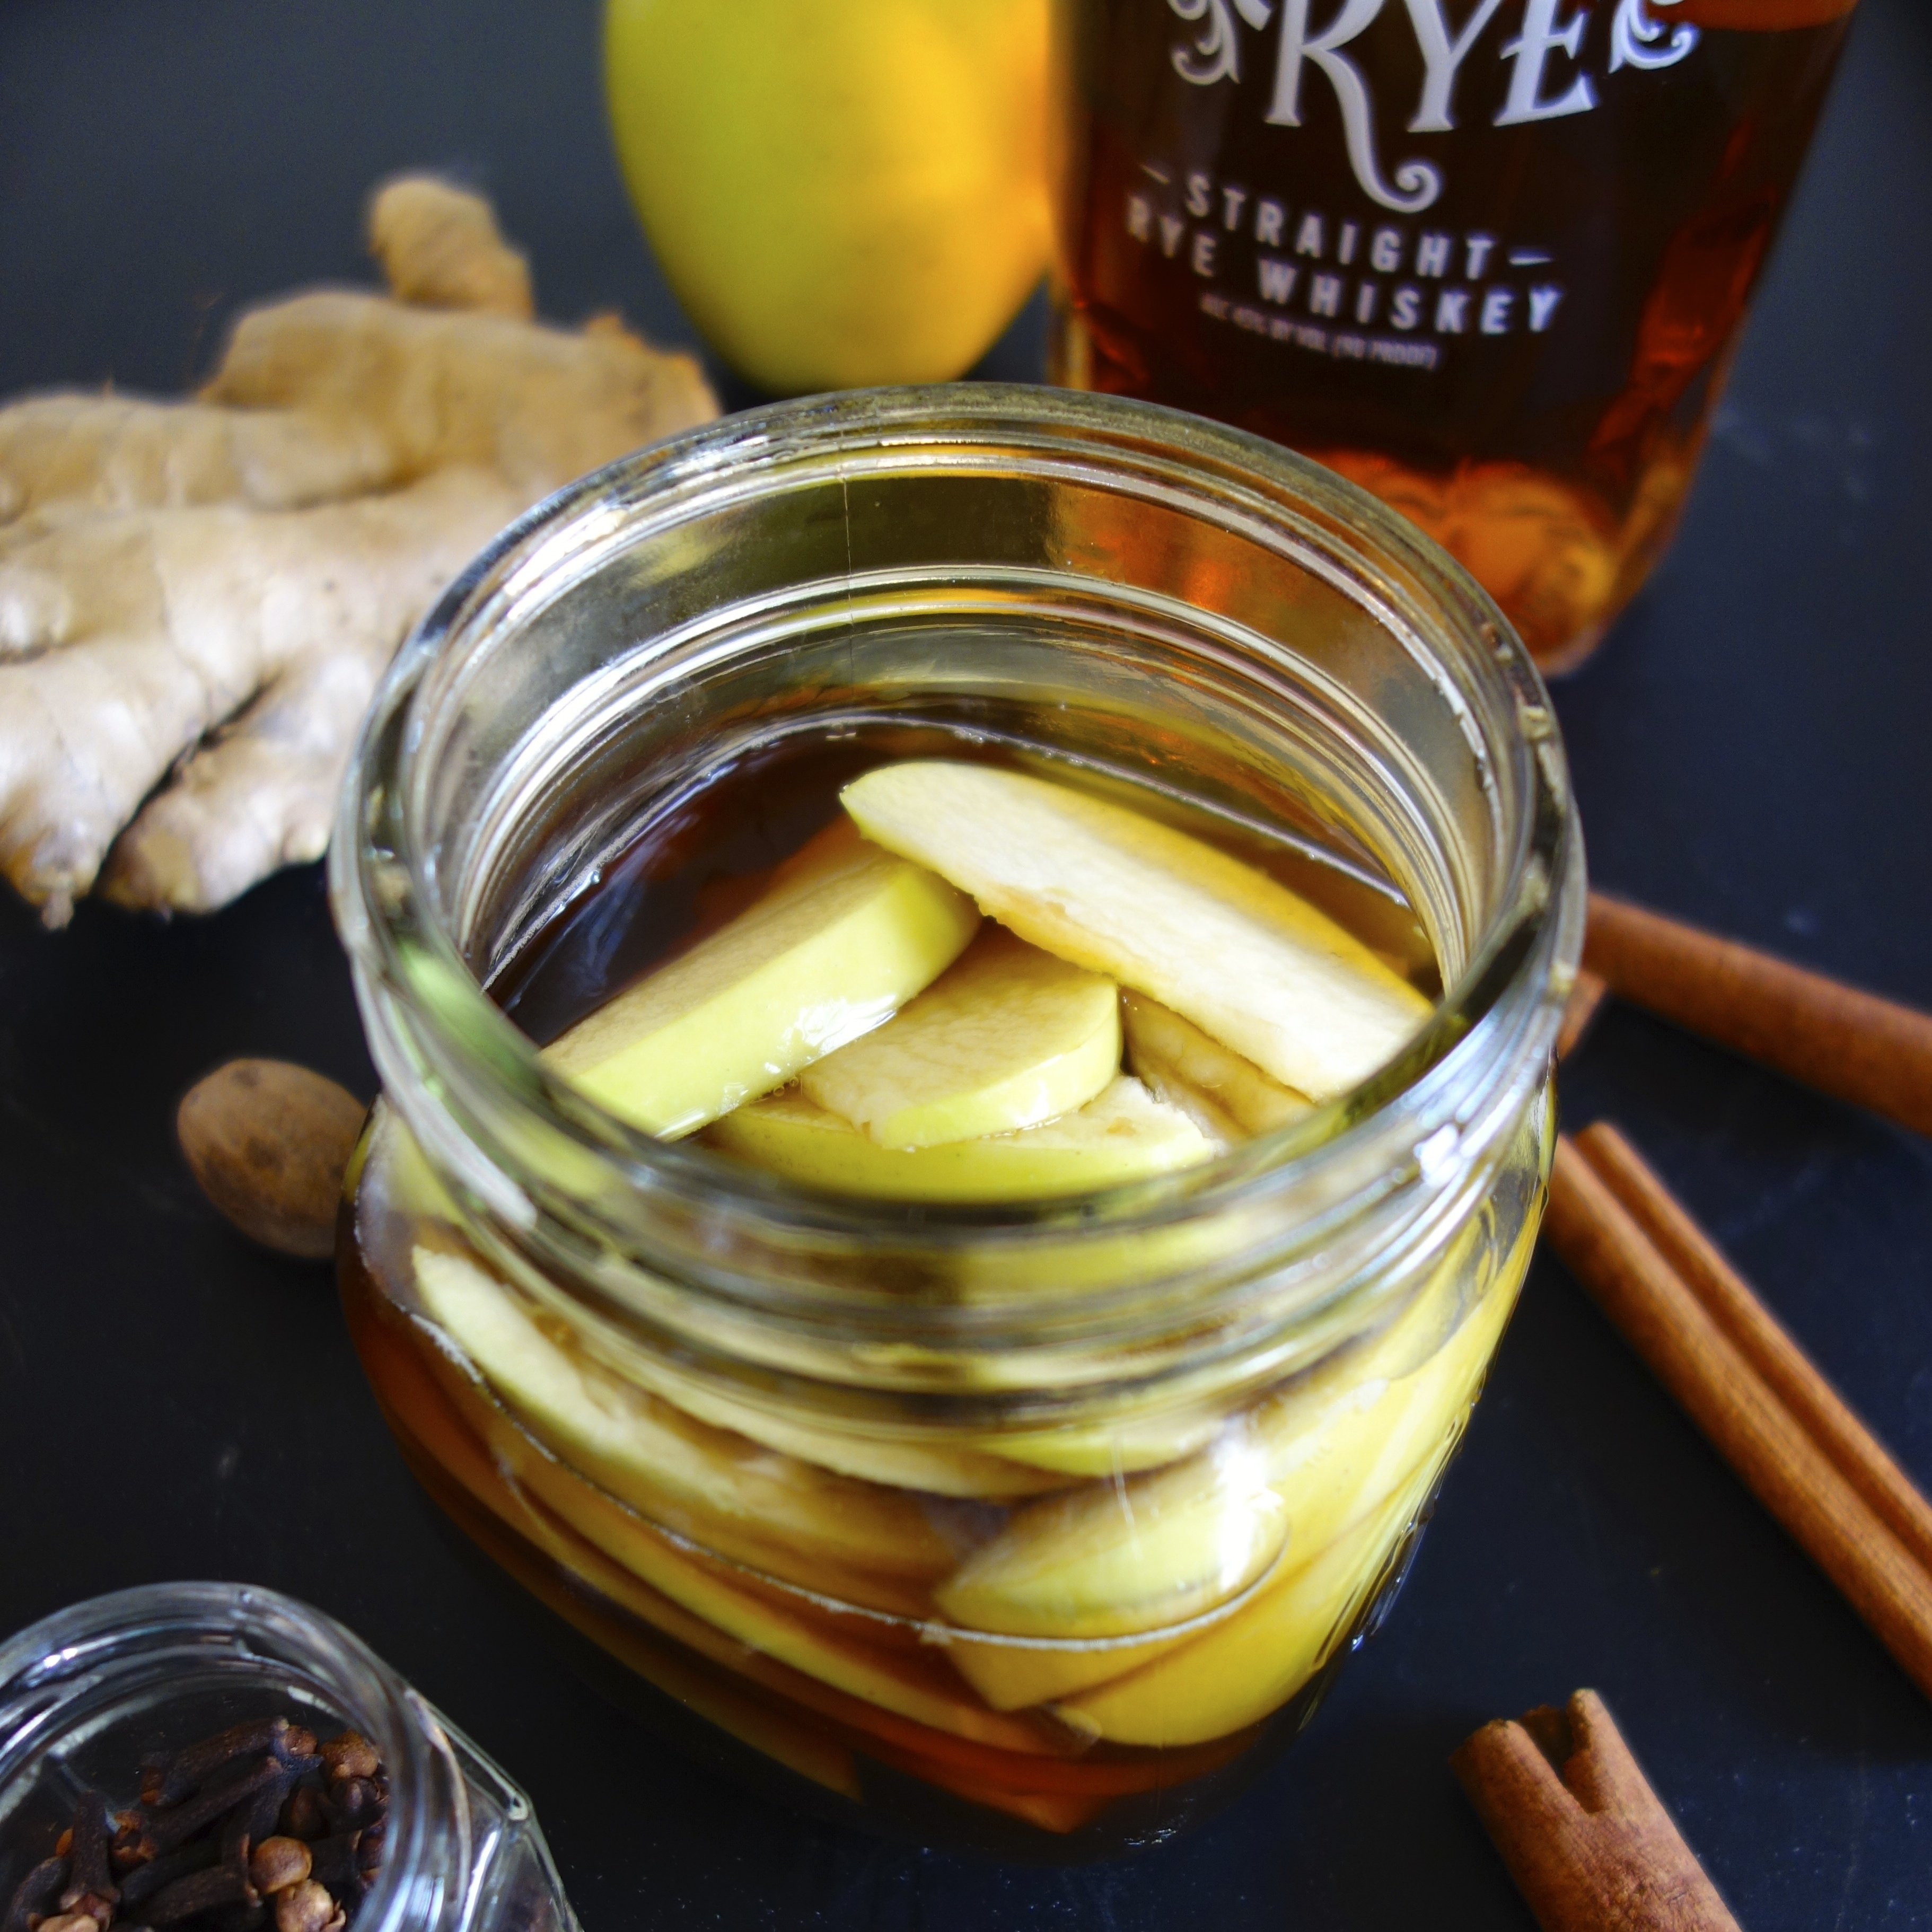 Apple-Spiced Rye